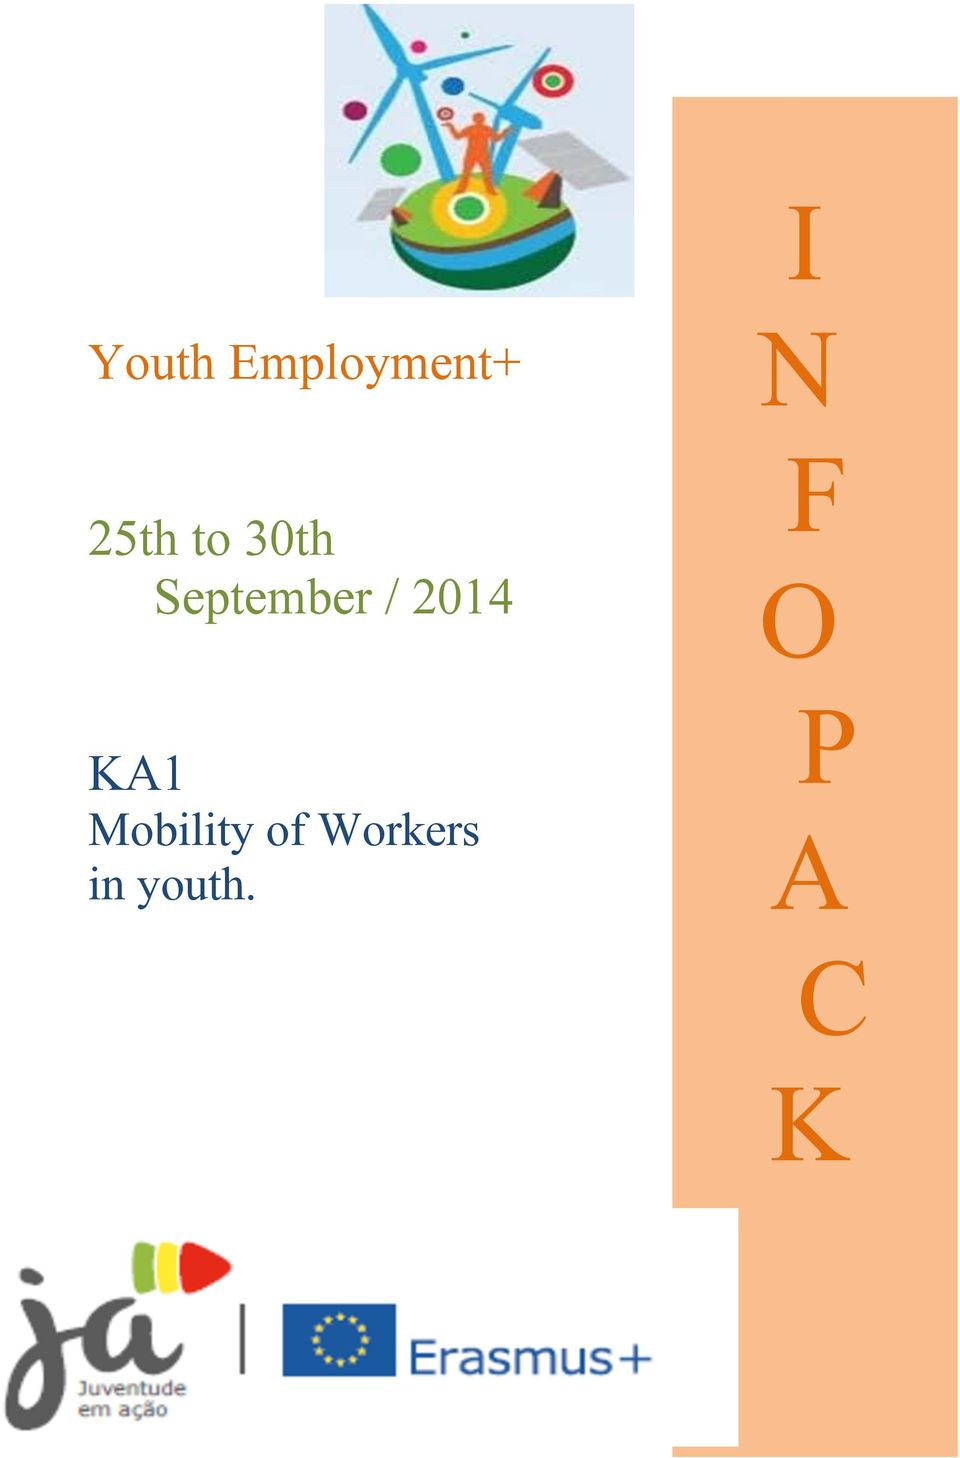 KA1 Mobility of Workers